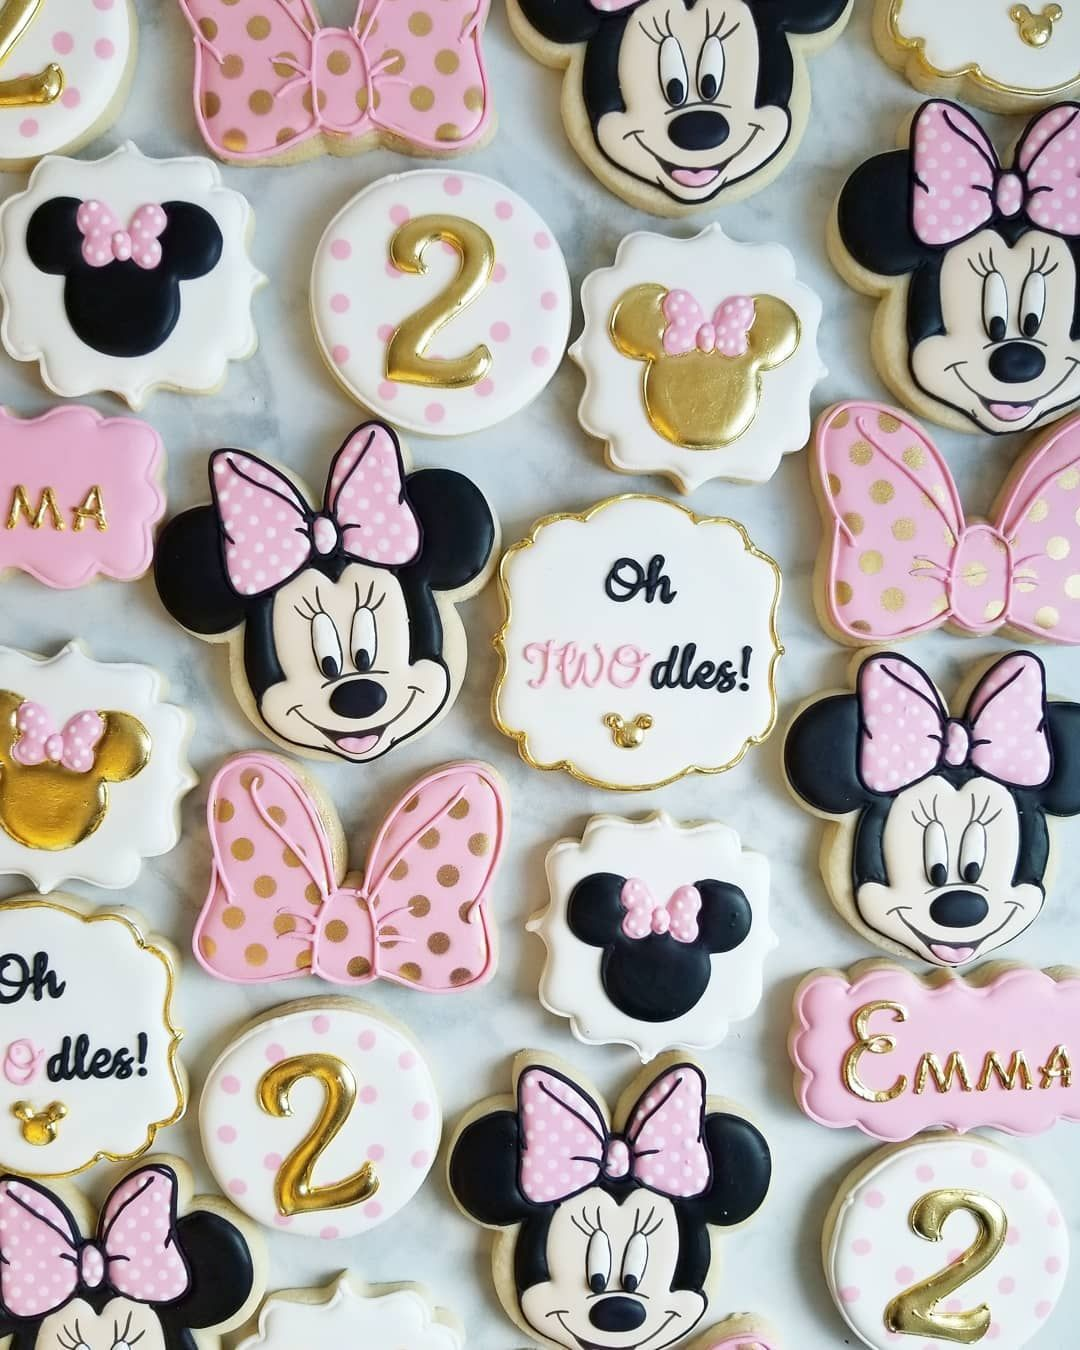 "Jessie Edwards on Instagram: ""Minnie Mouse cookies for a 2nd birthday! #decoratedcookies #yxecookies #minniemousecookies #customcookies"""